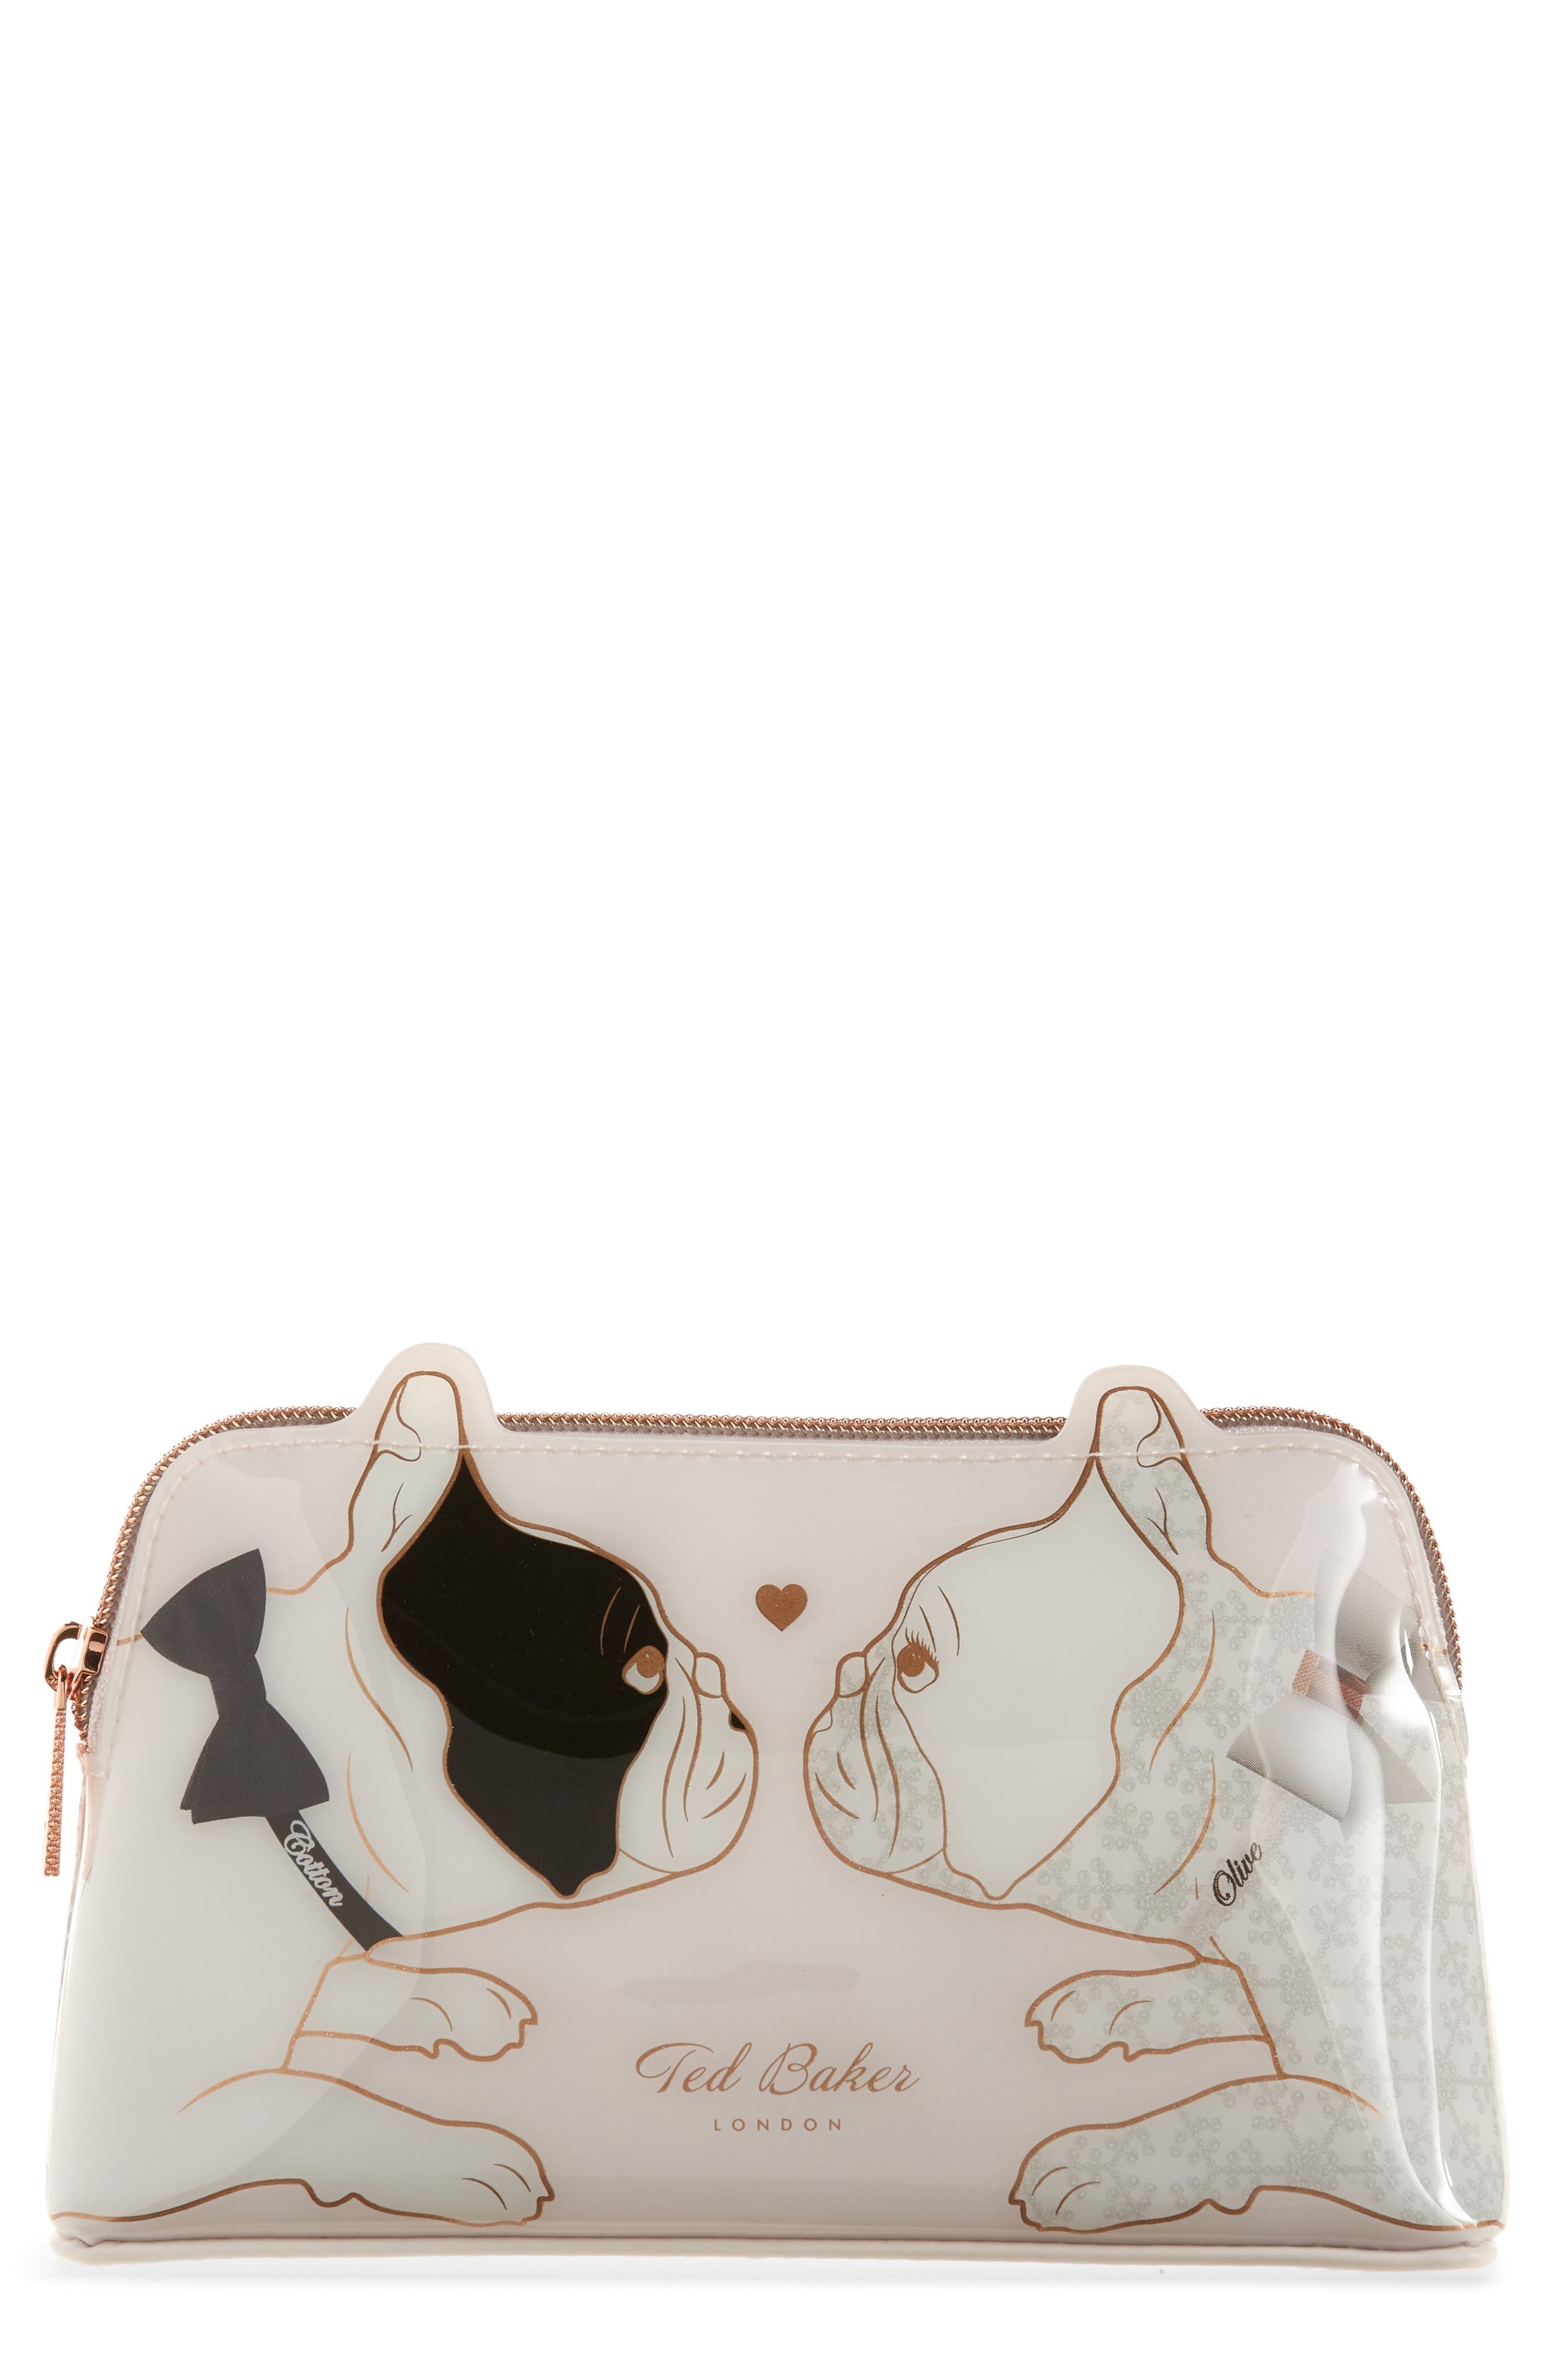 Aria Dogs Cosmetics Case in Nude Pink